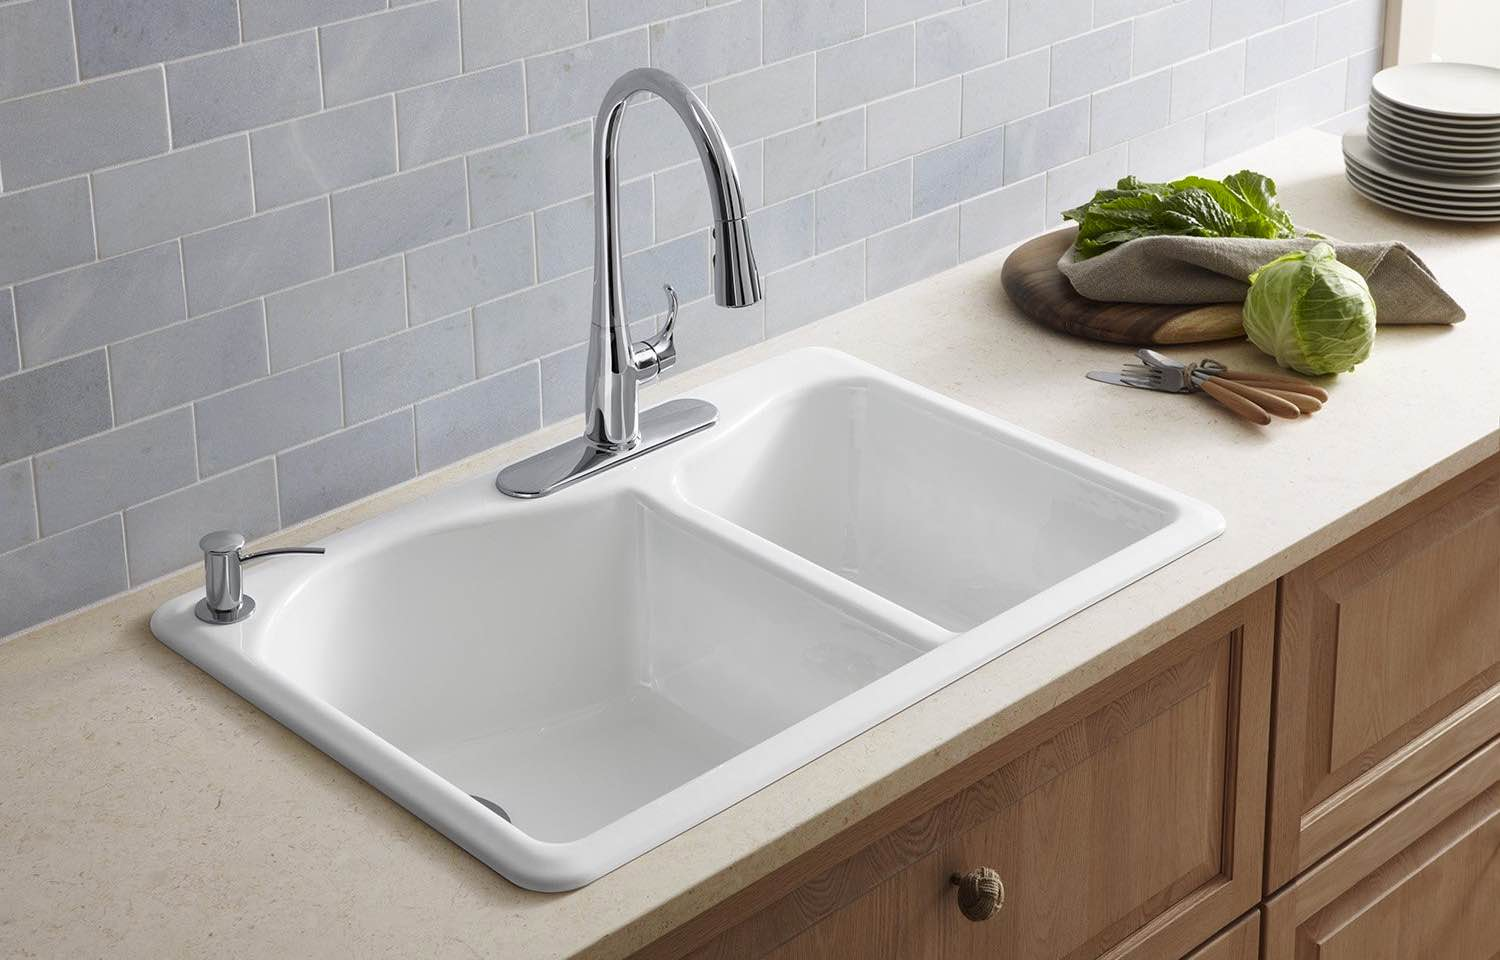 ... Kohler K 5841 4 KA Lawnfield Top Mount Cast Iron Sink ...